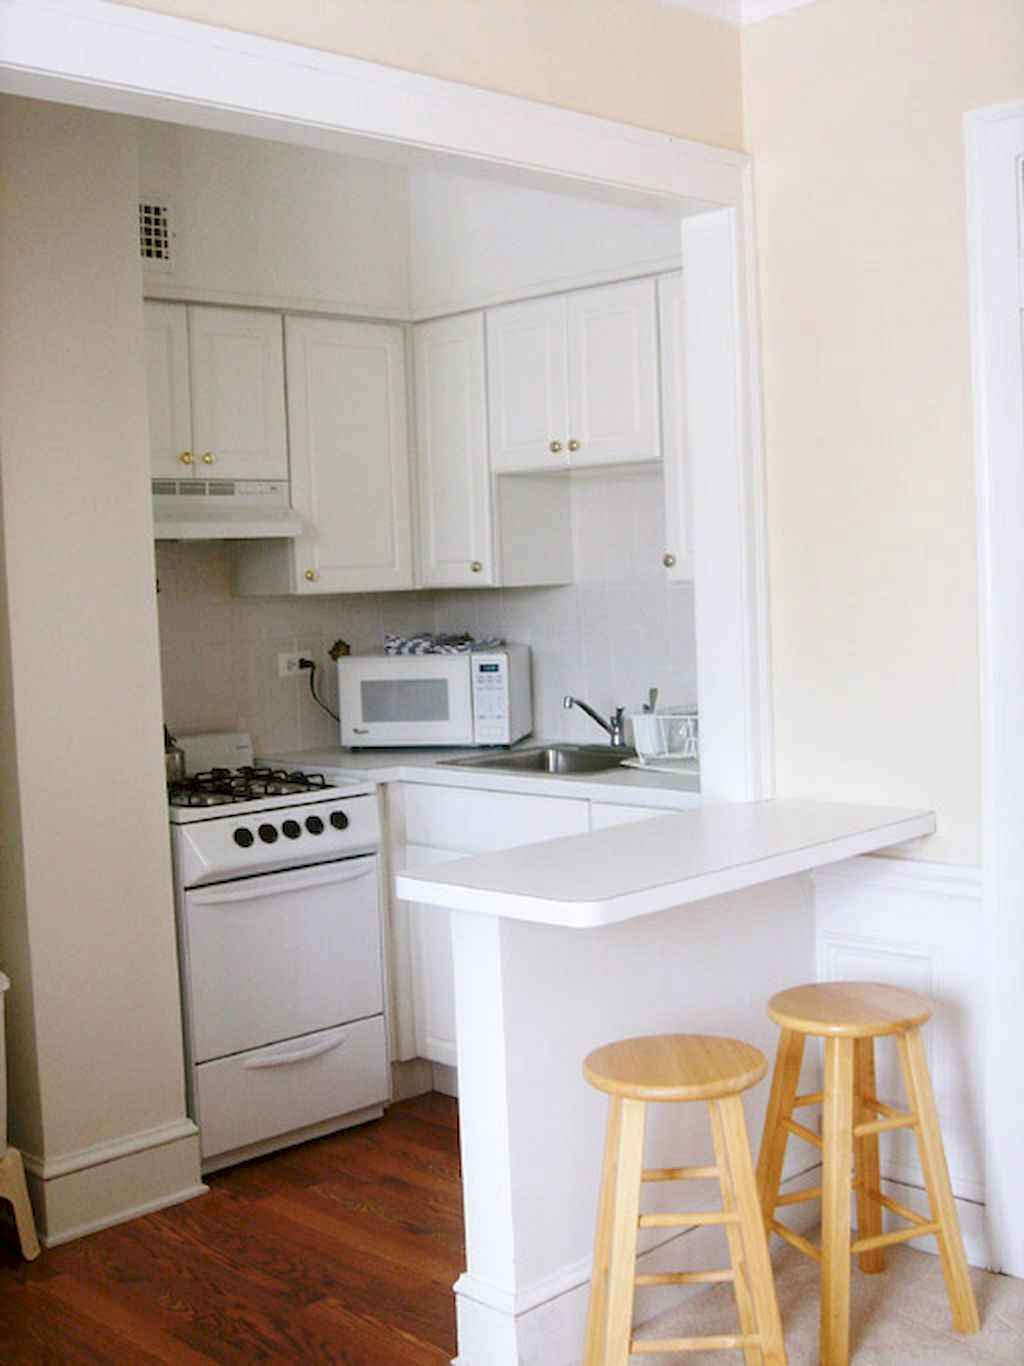 Cool small apartment decorating ideas on a budget (32)